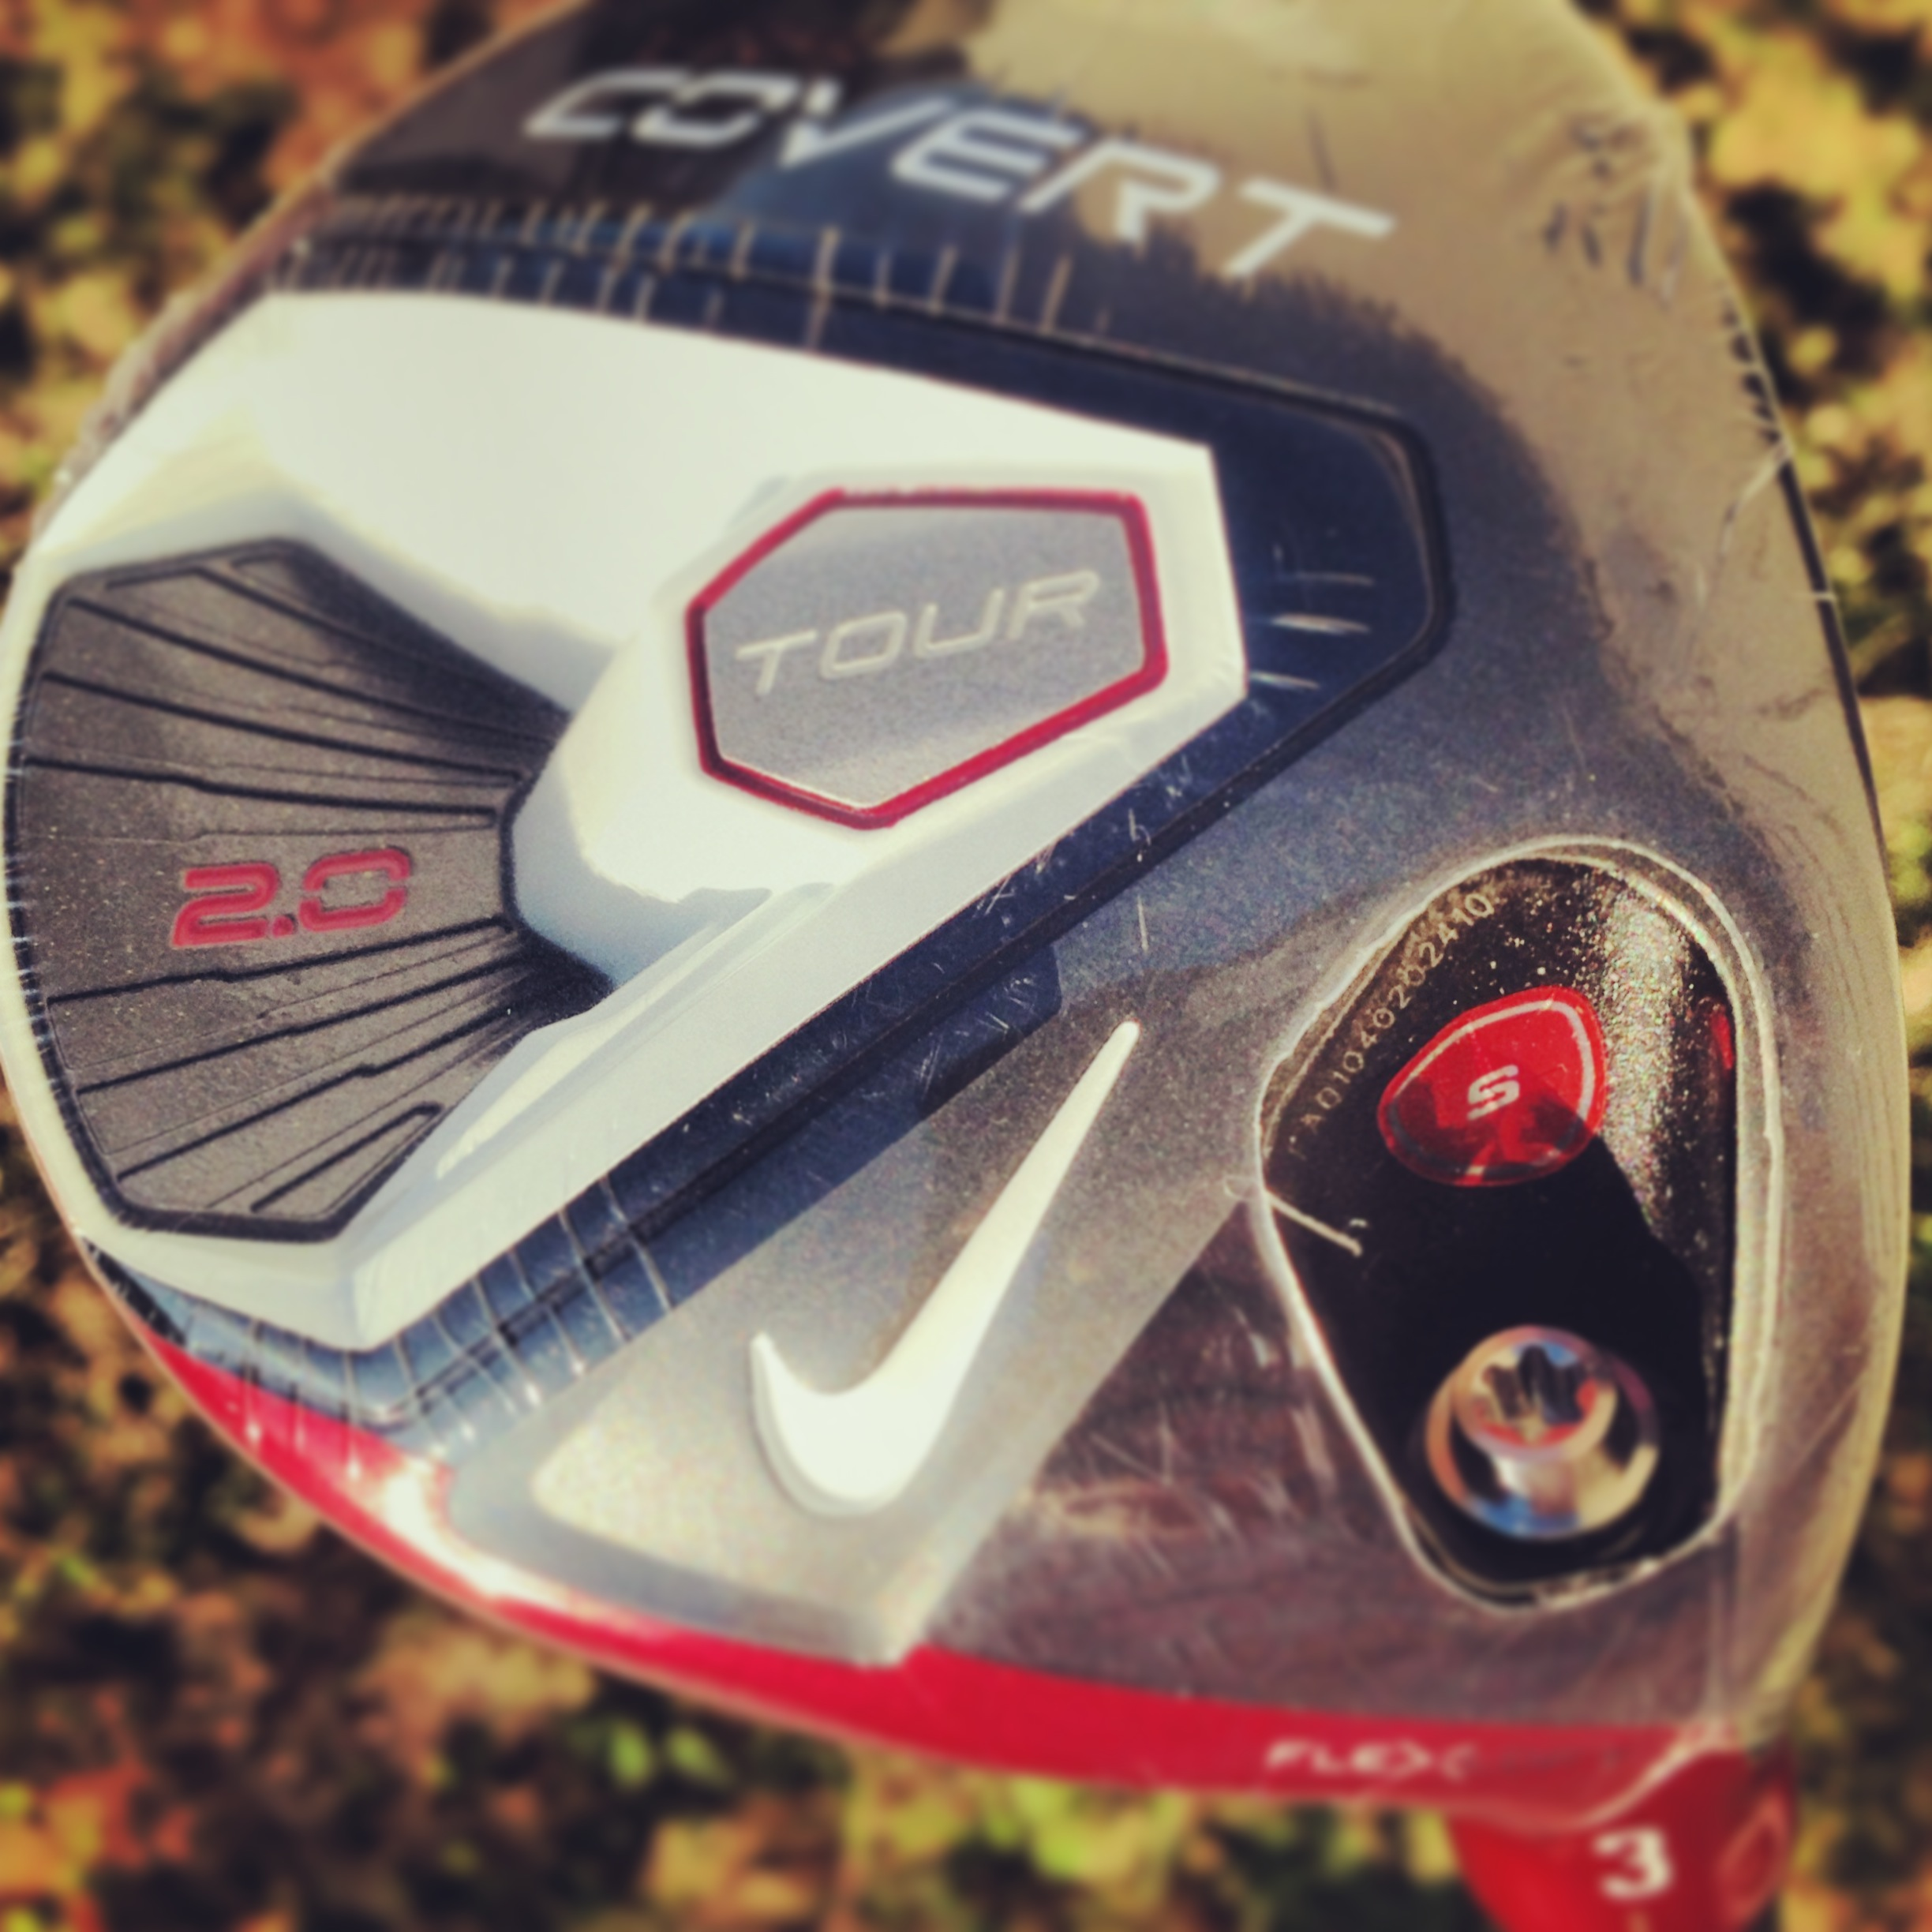 nike_covert20_tour_fairway_wood